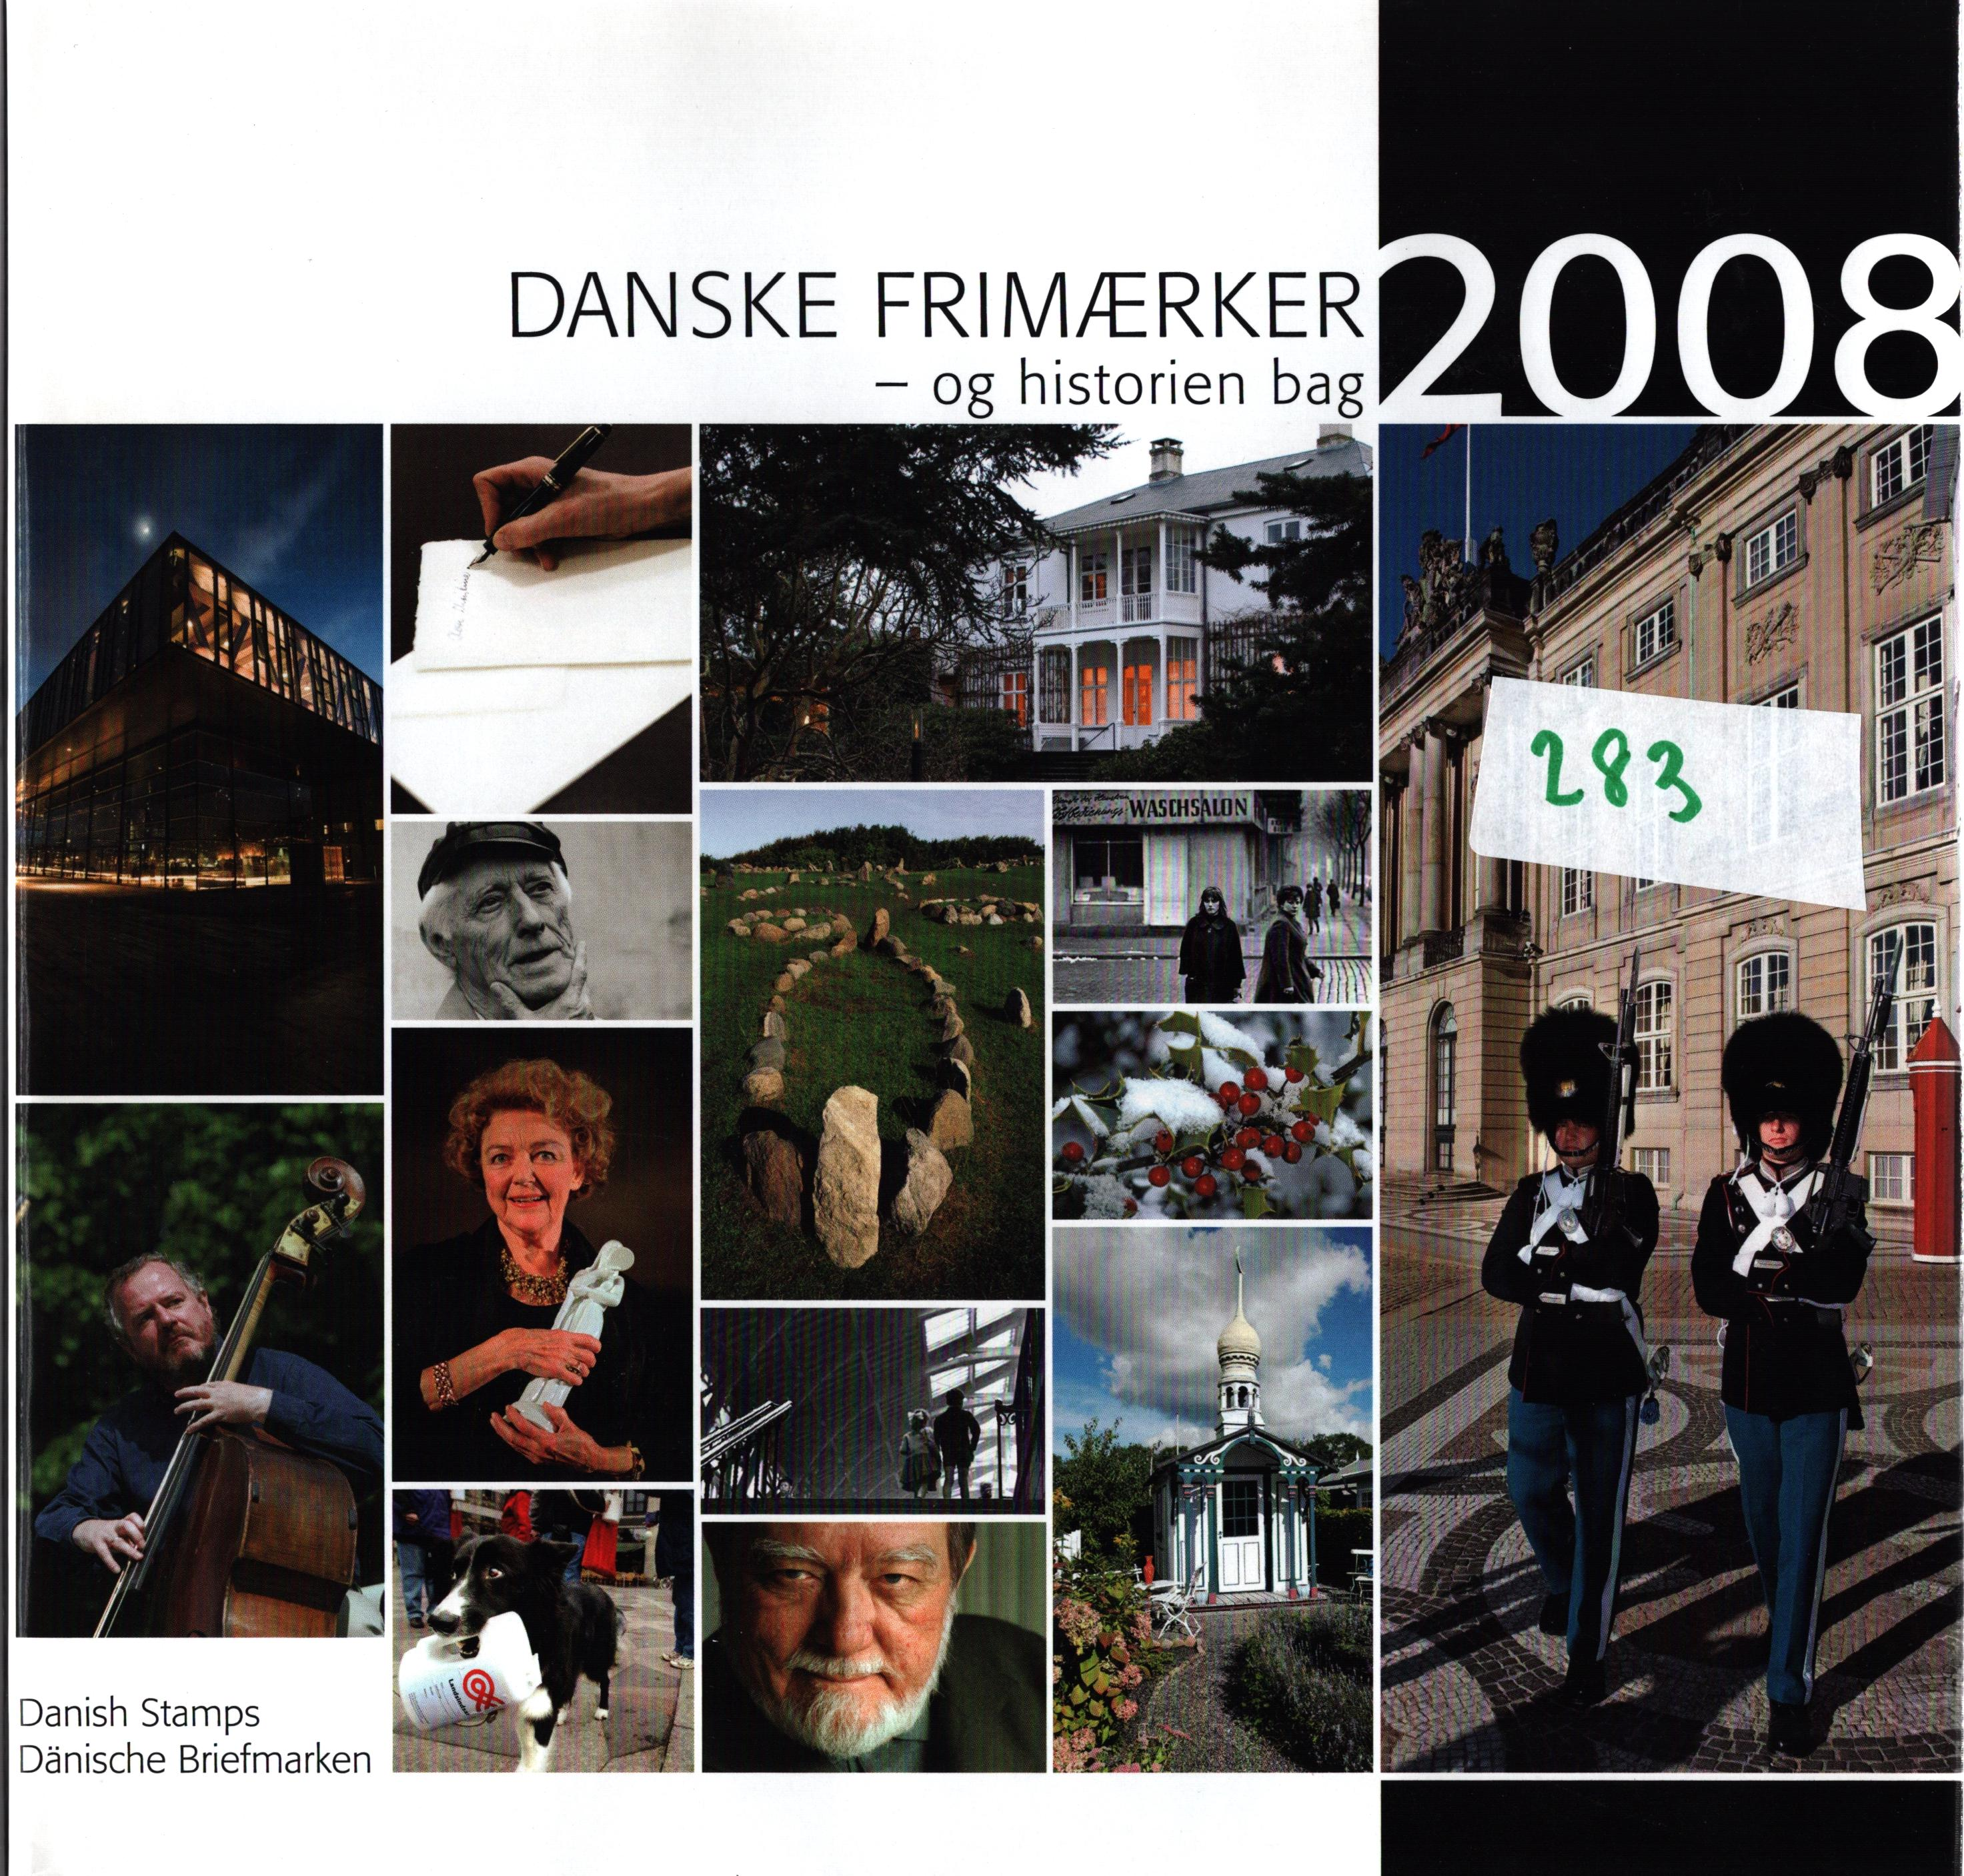 Danish 2008 stamp yearbook. Unmounted mint stamps. Good condition. We combine postage on multiple